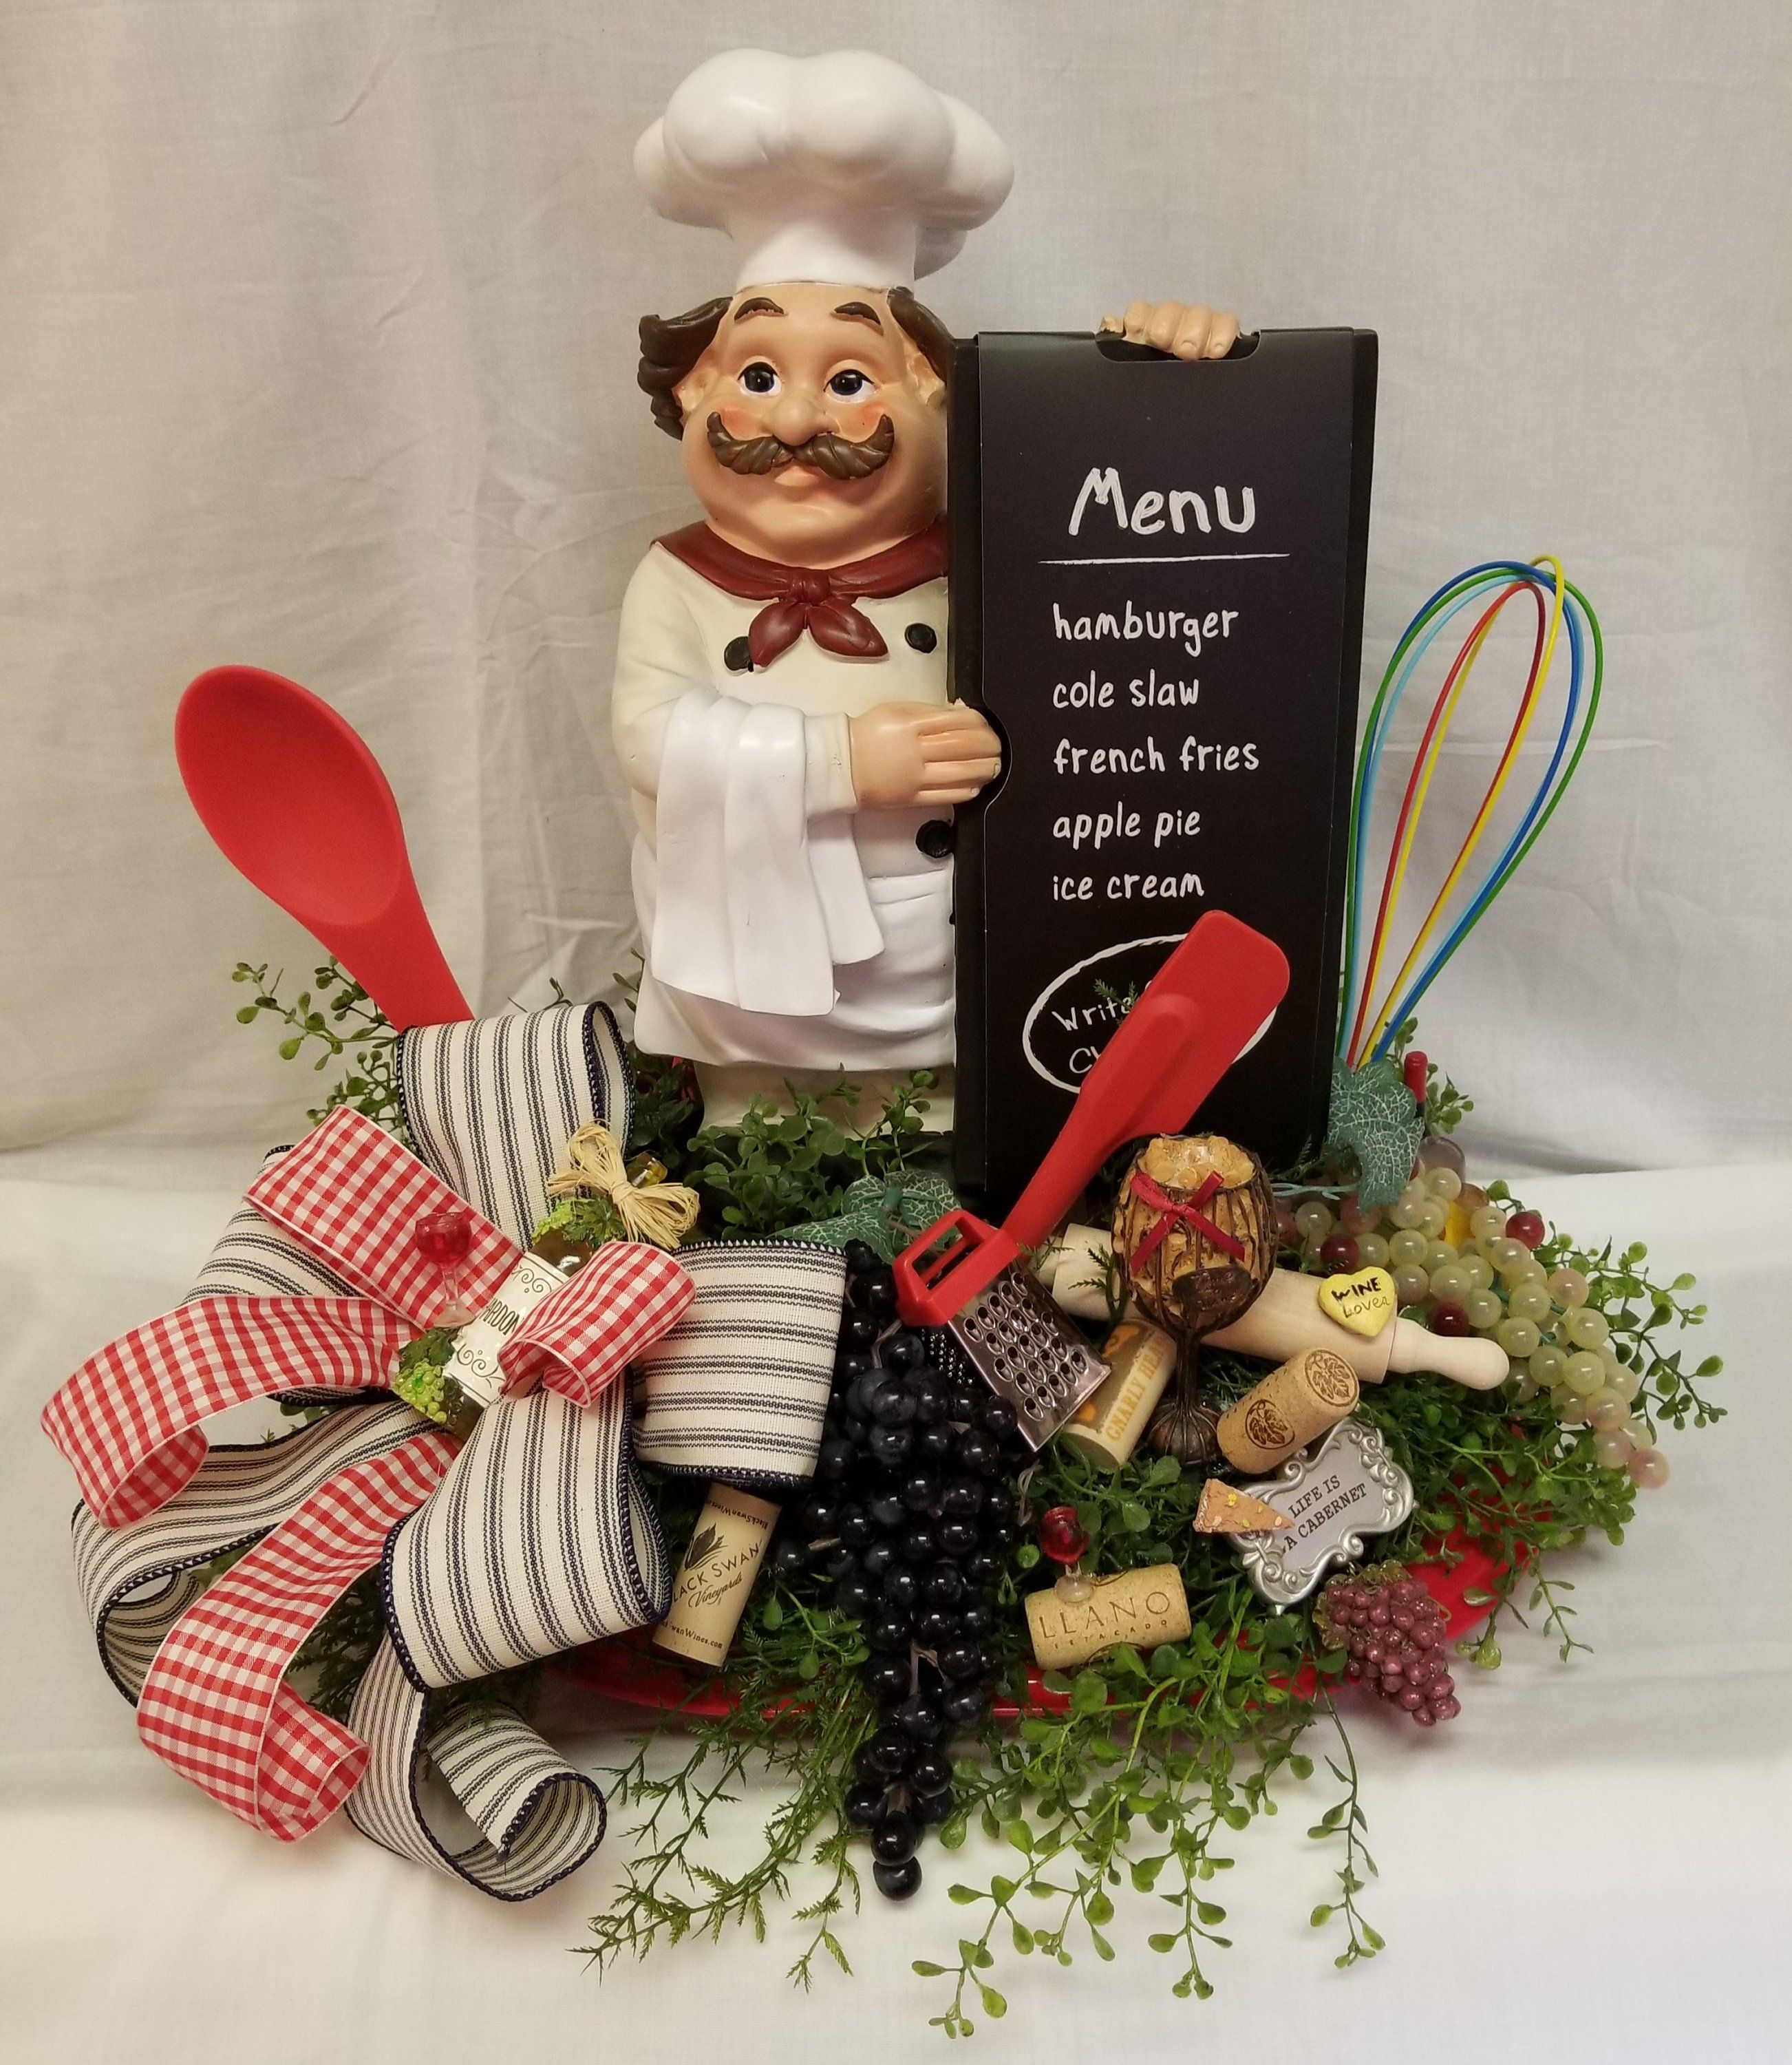 Kitchen Centerpiece Kitchen Decor Italian Chef Centerpiece Chalkboard Centerpiece Kitchen Chef Italian Chef Decor Chef Wine Decor Kitchen Centerpiece Wine Decor Chalkboard Centerpieces